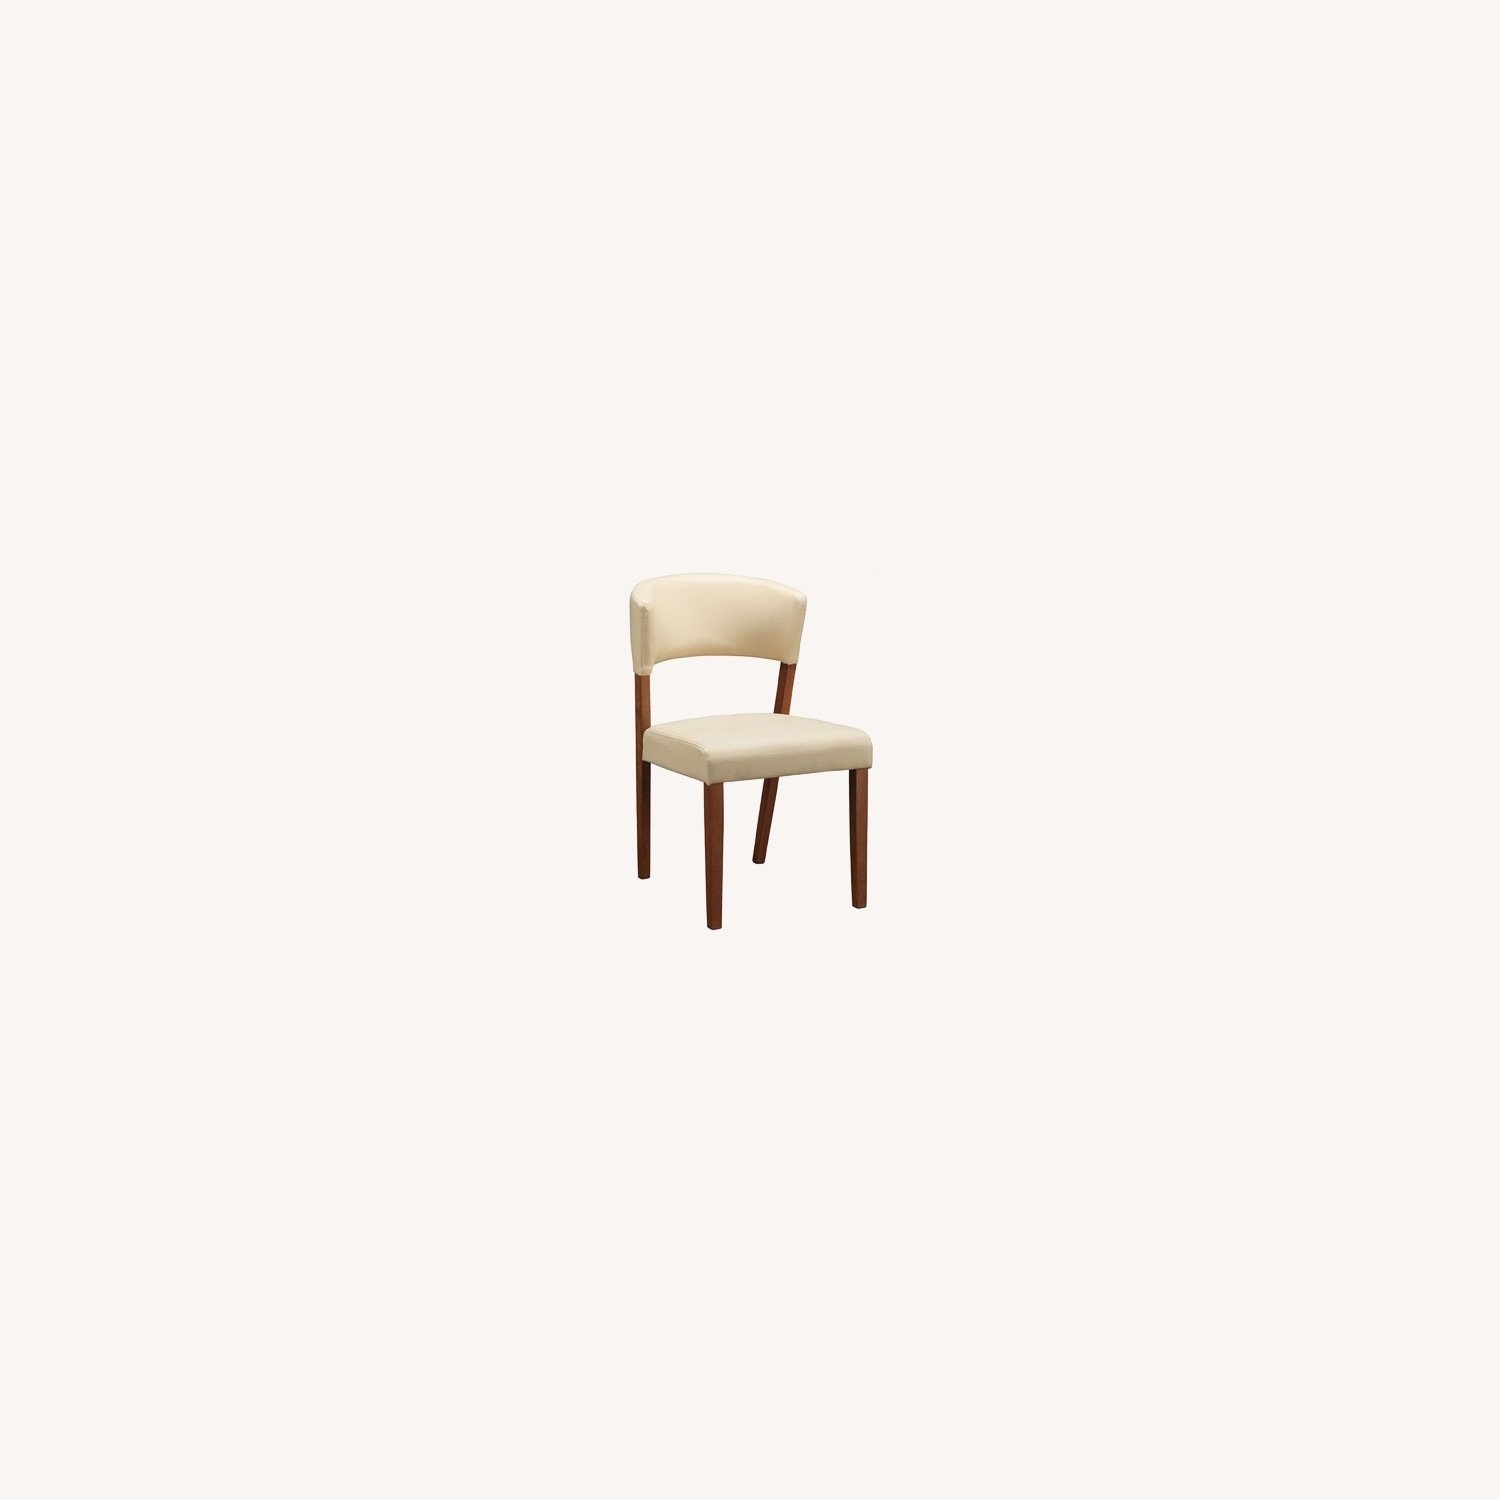 Retro Side Chair In Nutmeg & Cream Leatherette - image-4